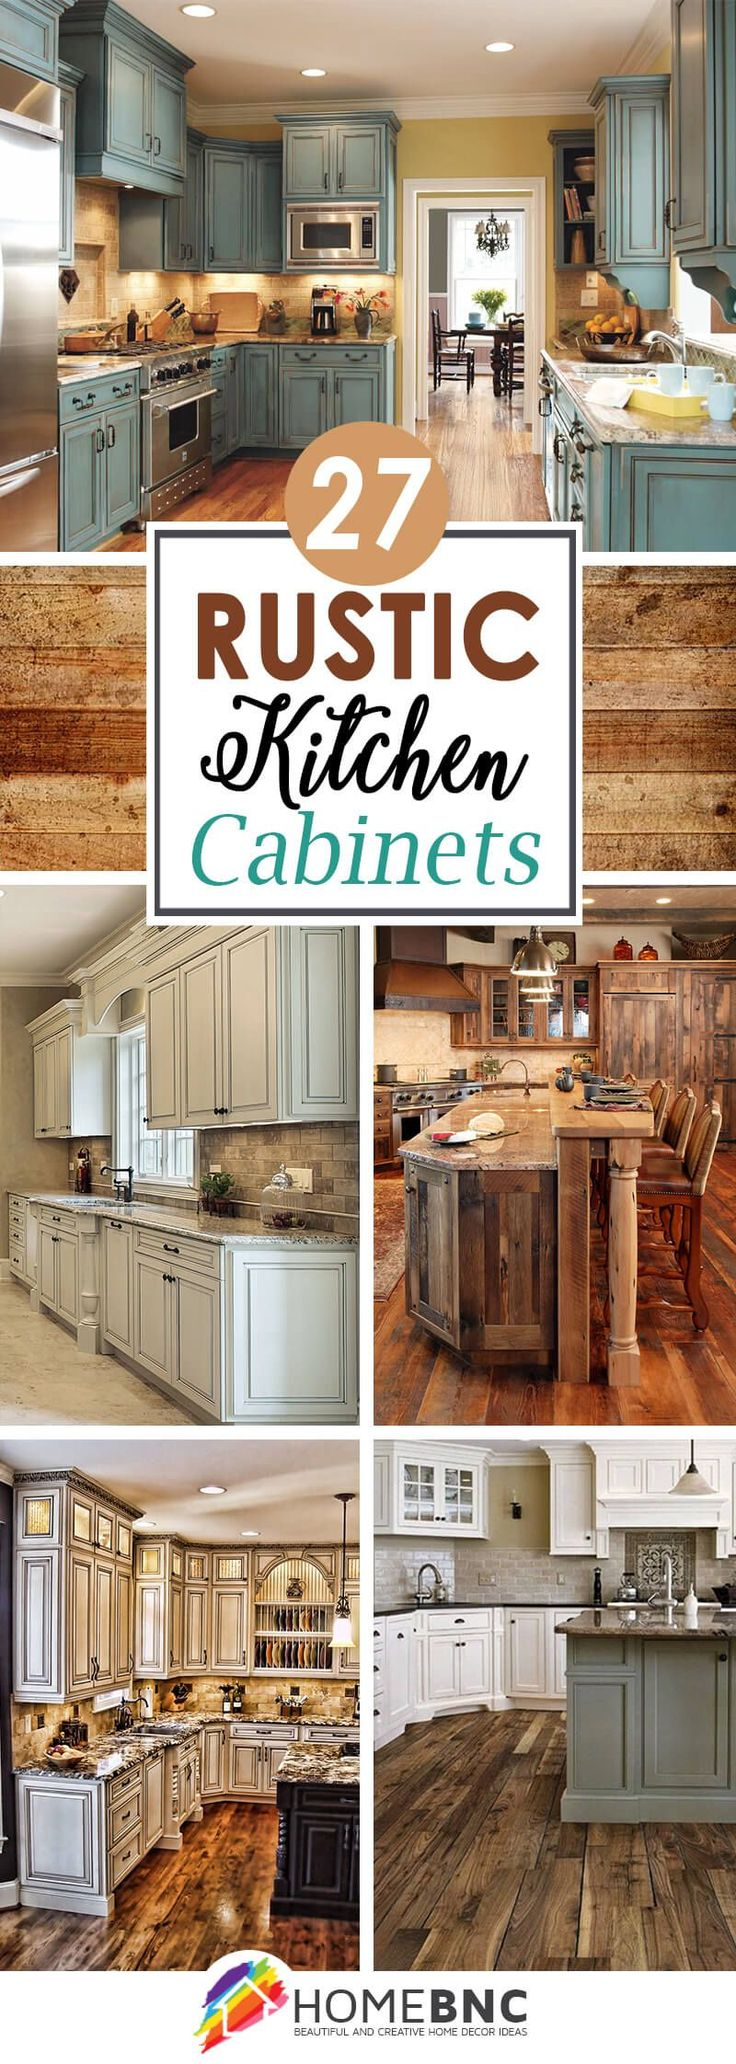 Best 25 Kitchen cabinets ideas on Pinterest Country kitchen